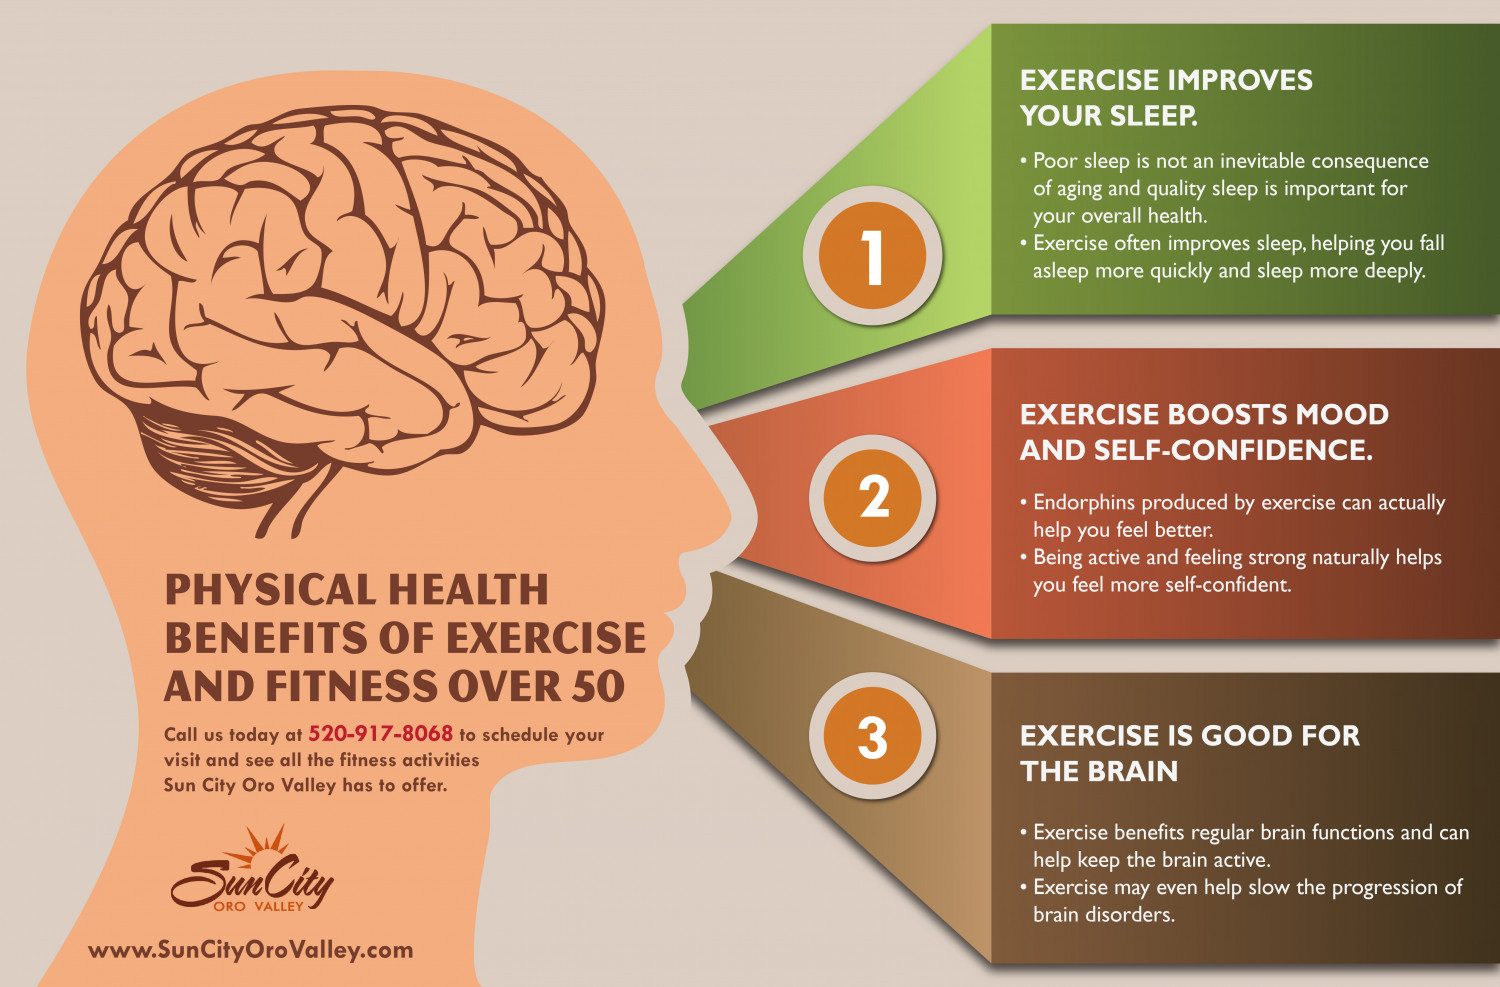 Mental Health Benefits of Exercise and Fitness Over 50 ...